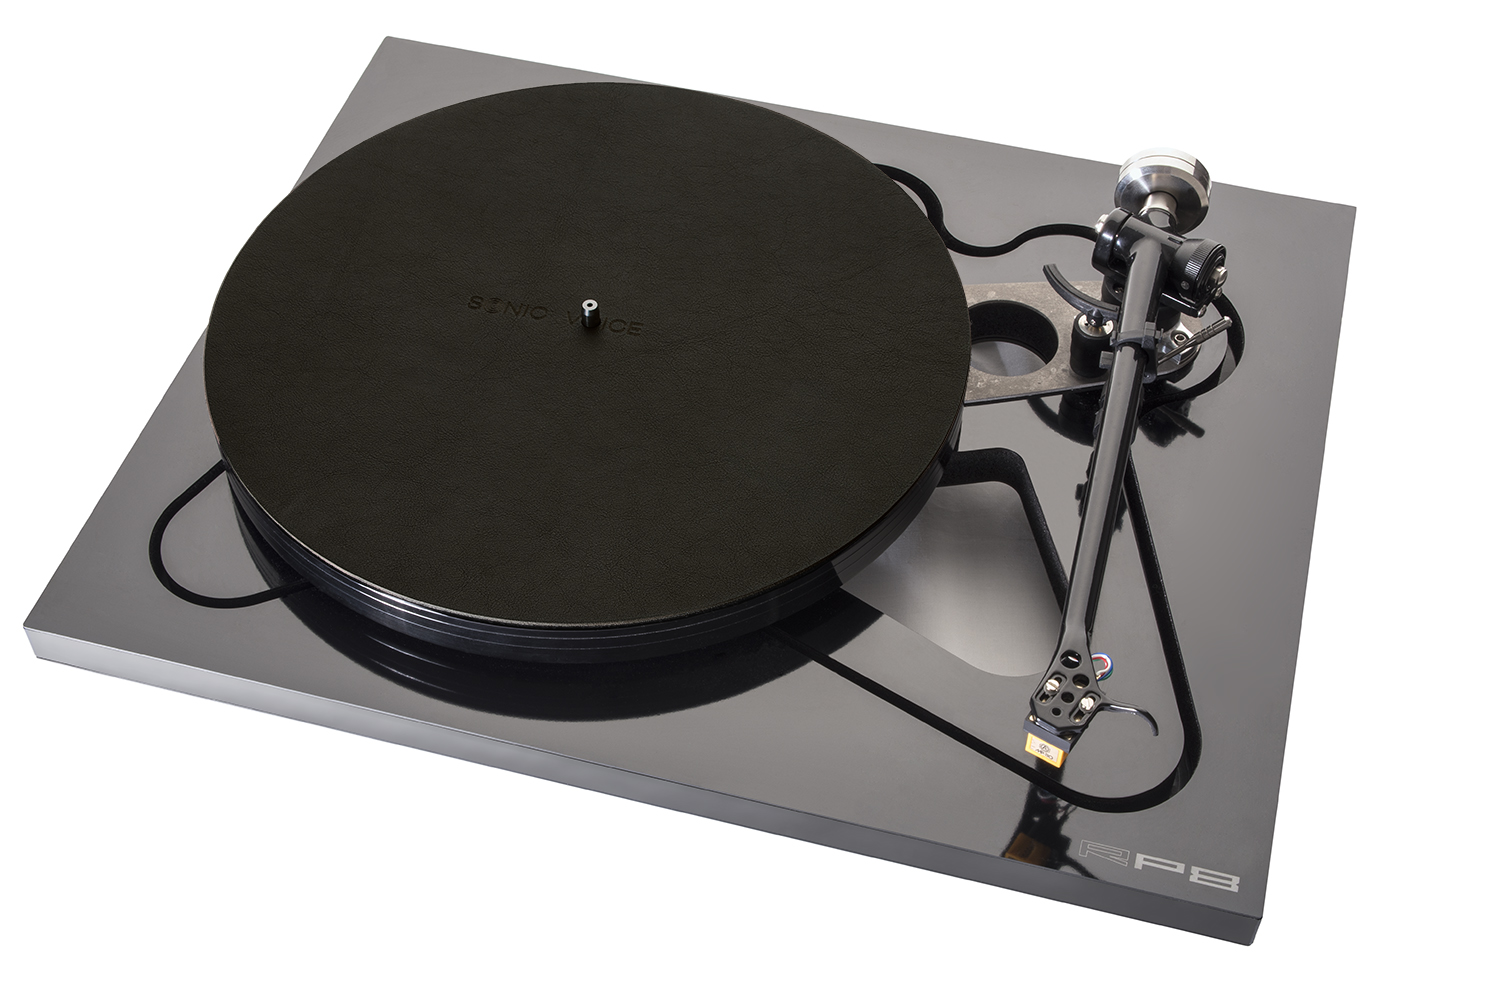 Turntable Mat Ranchero dark-brown mit Filzunterlage